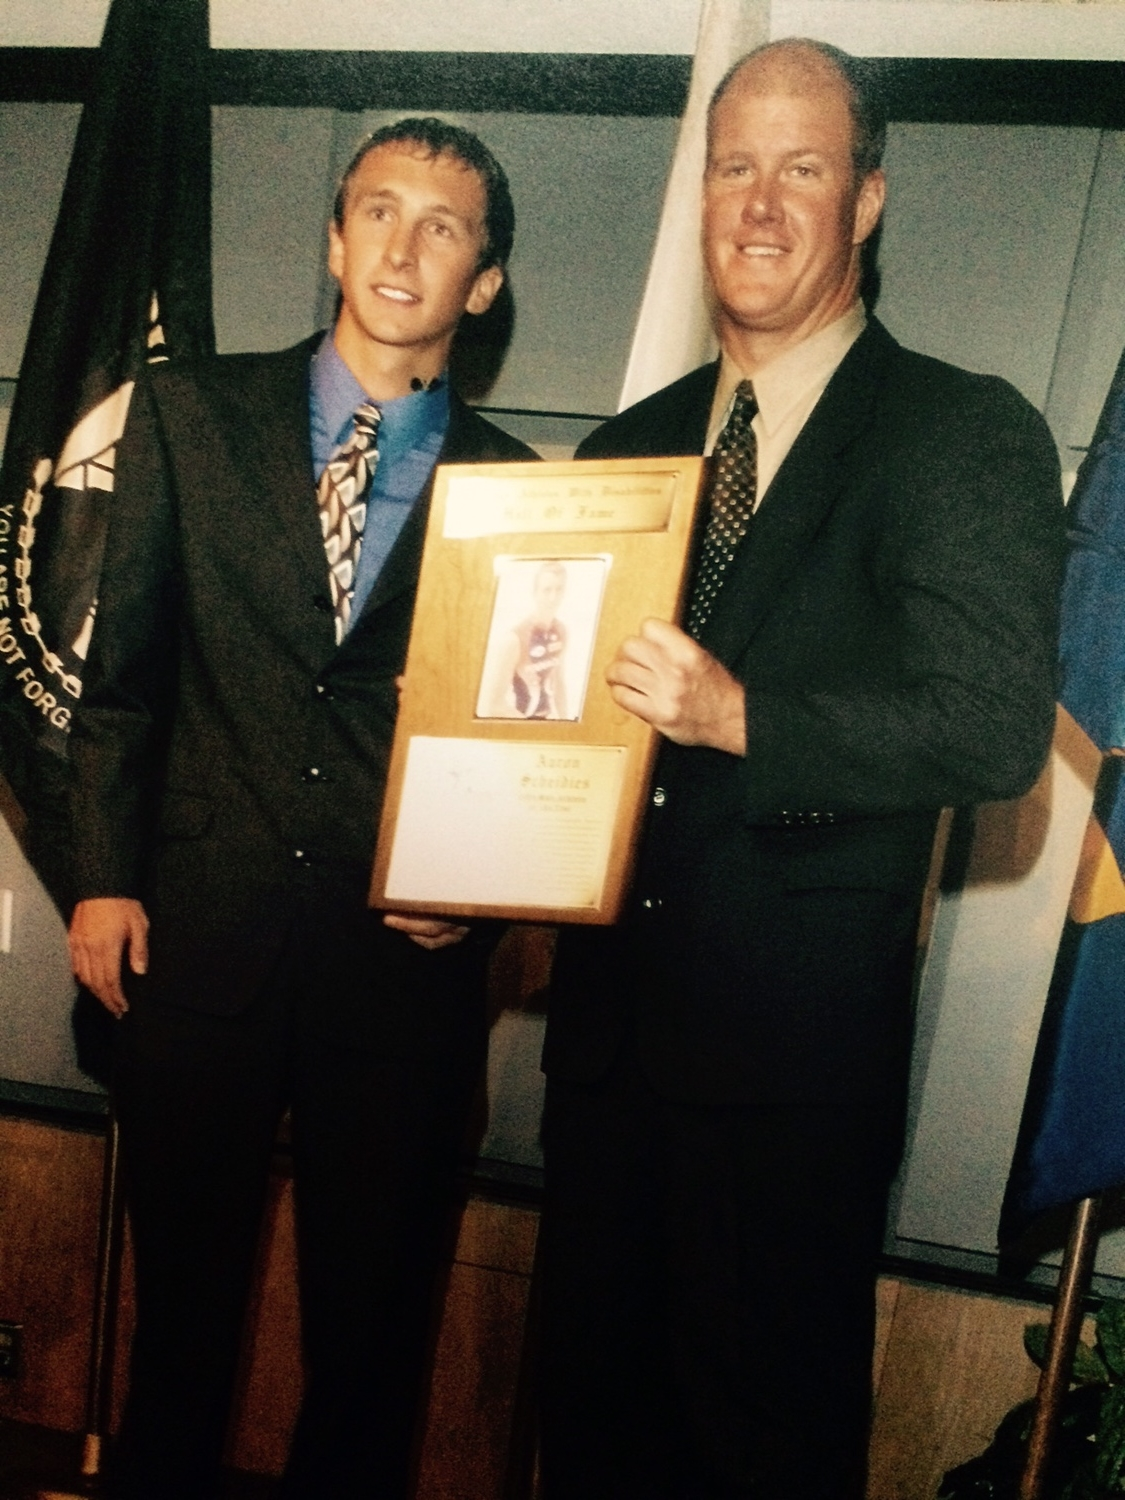 In 2004, I was inducted into the Athletes With A Disability Hall of Fame. Former MLB pitcher Jim Abbott spoke and inducted the class of inductees into this very group that gets selected for this honor.